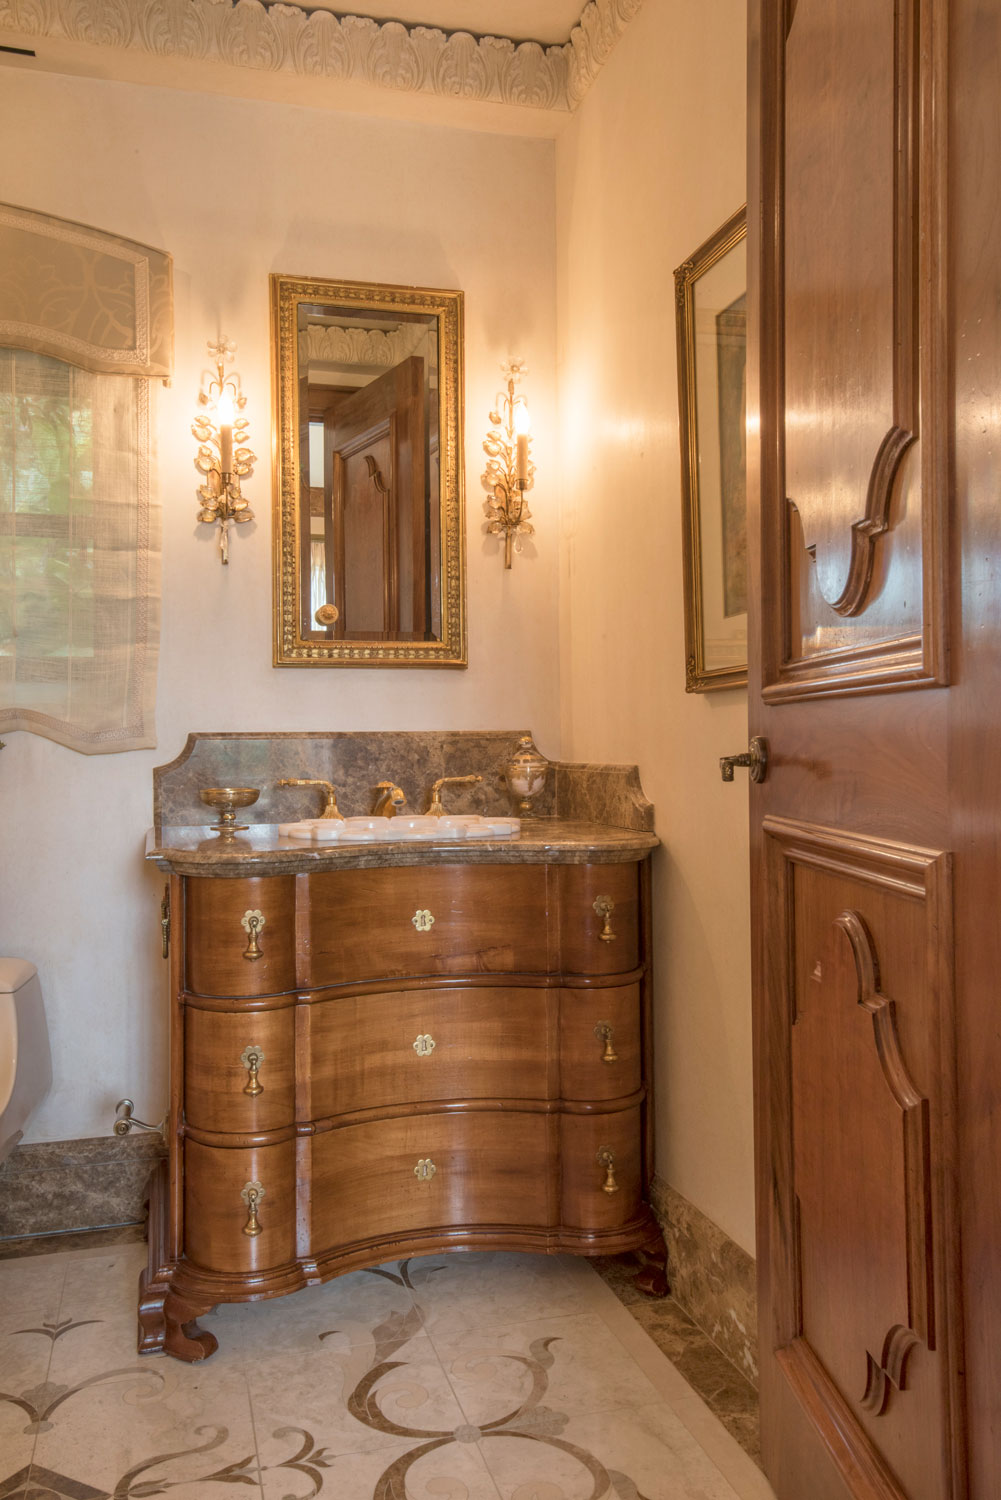 12-traditional-powder-room-ornate-floor-crown-moulding-gary-drake-general-contractor.jpg